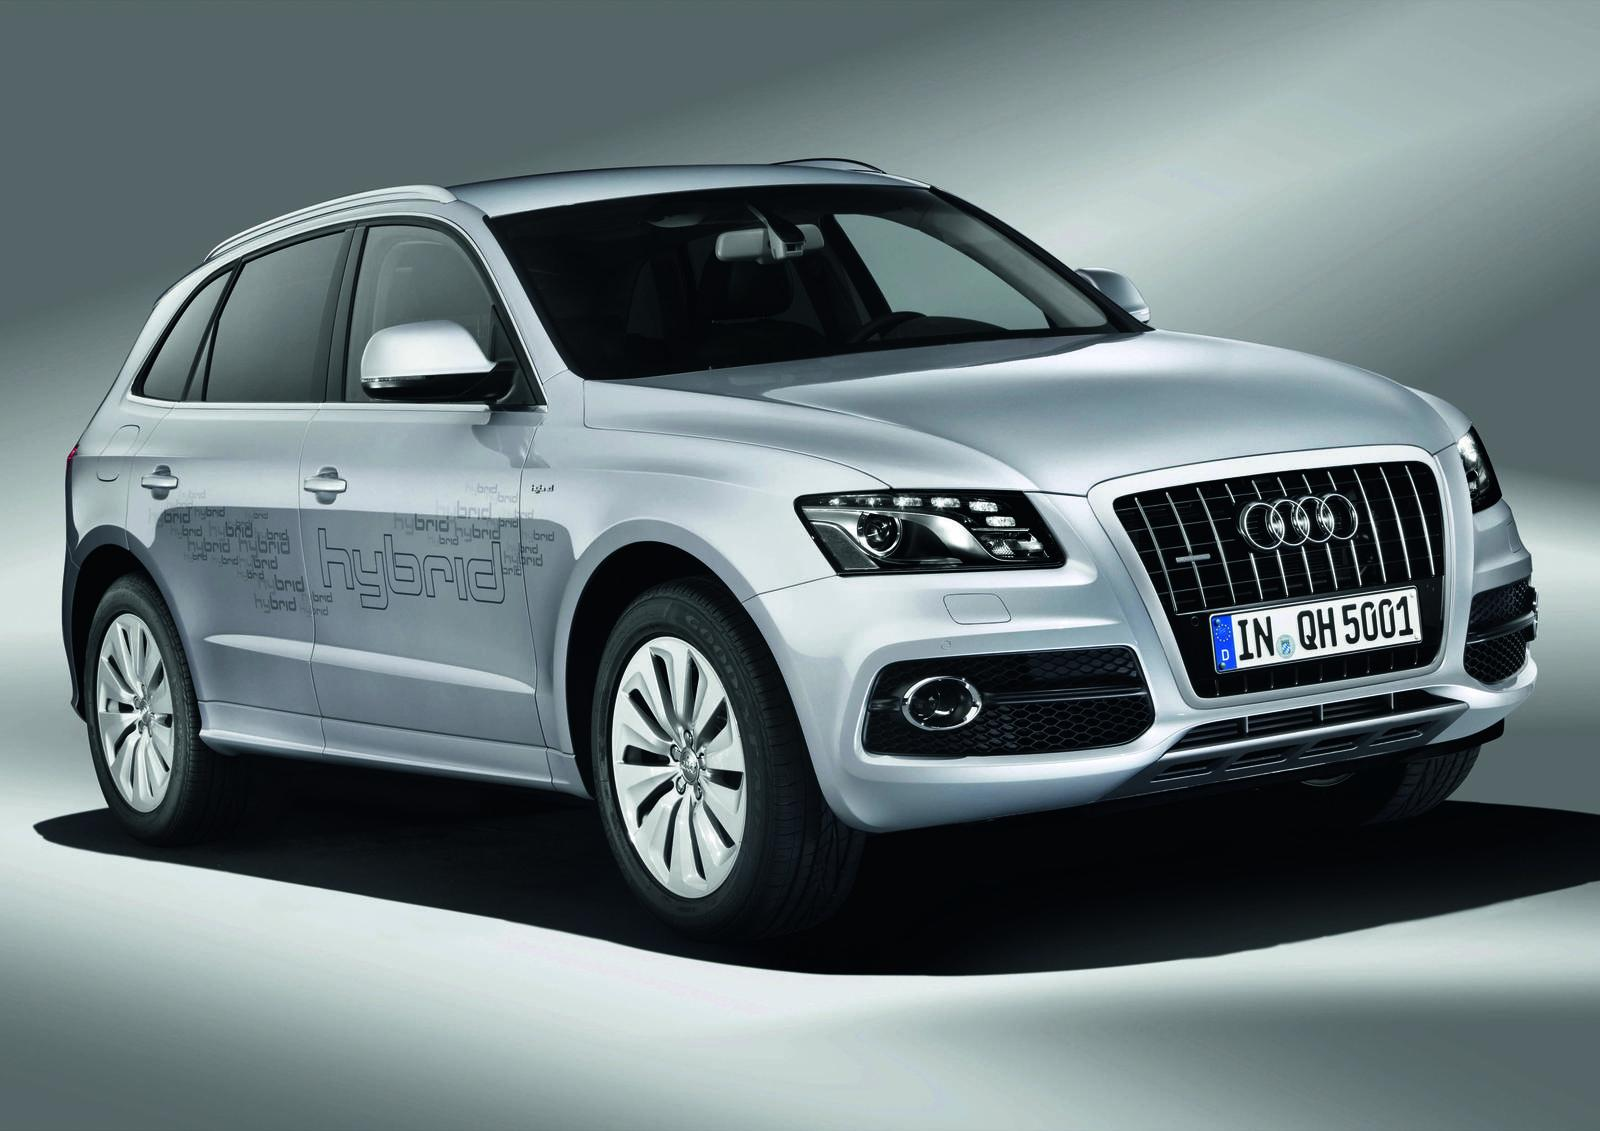 2011 audi q5 hybrid quattro details spec new car used car. Black Bedroom Furniture Sets. Home Design Ideas